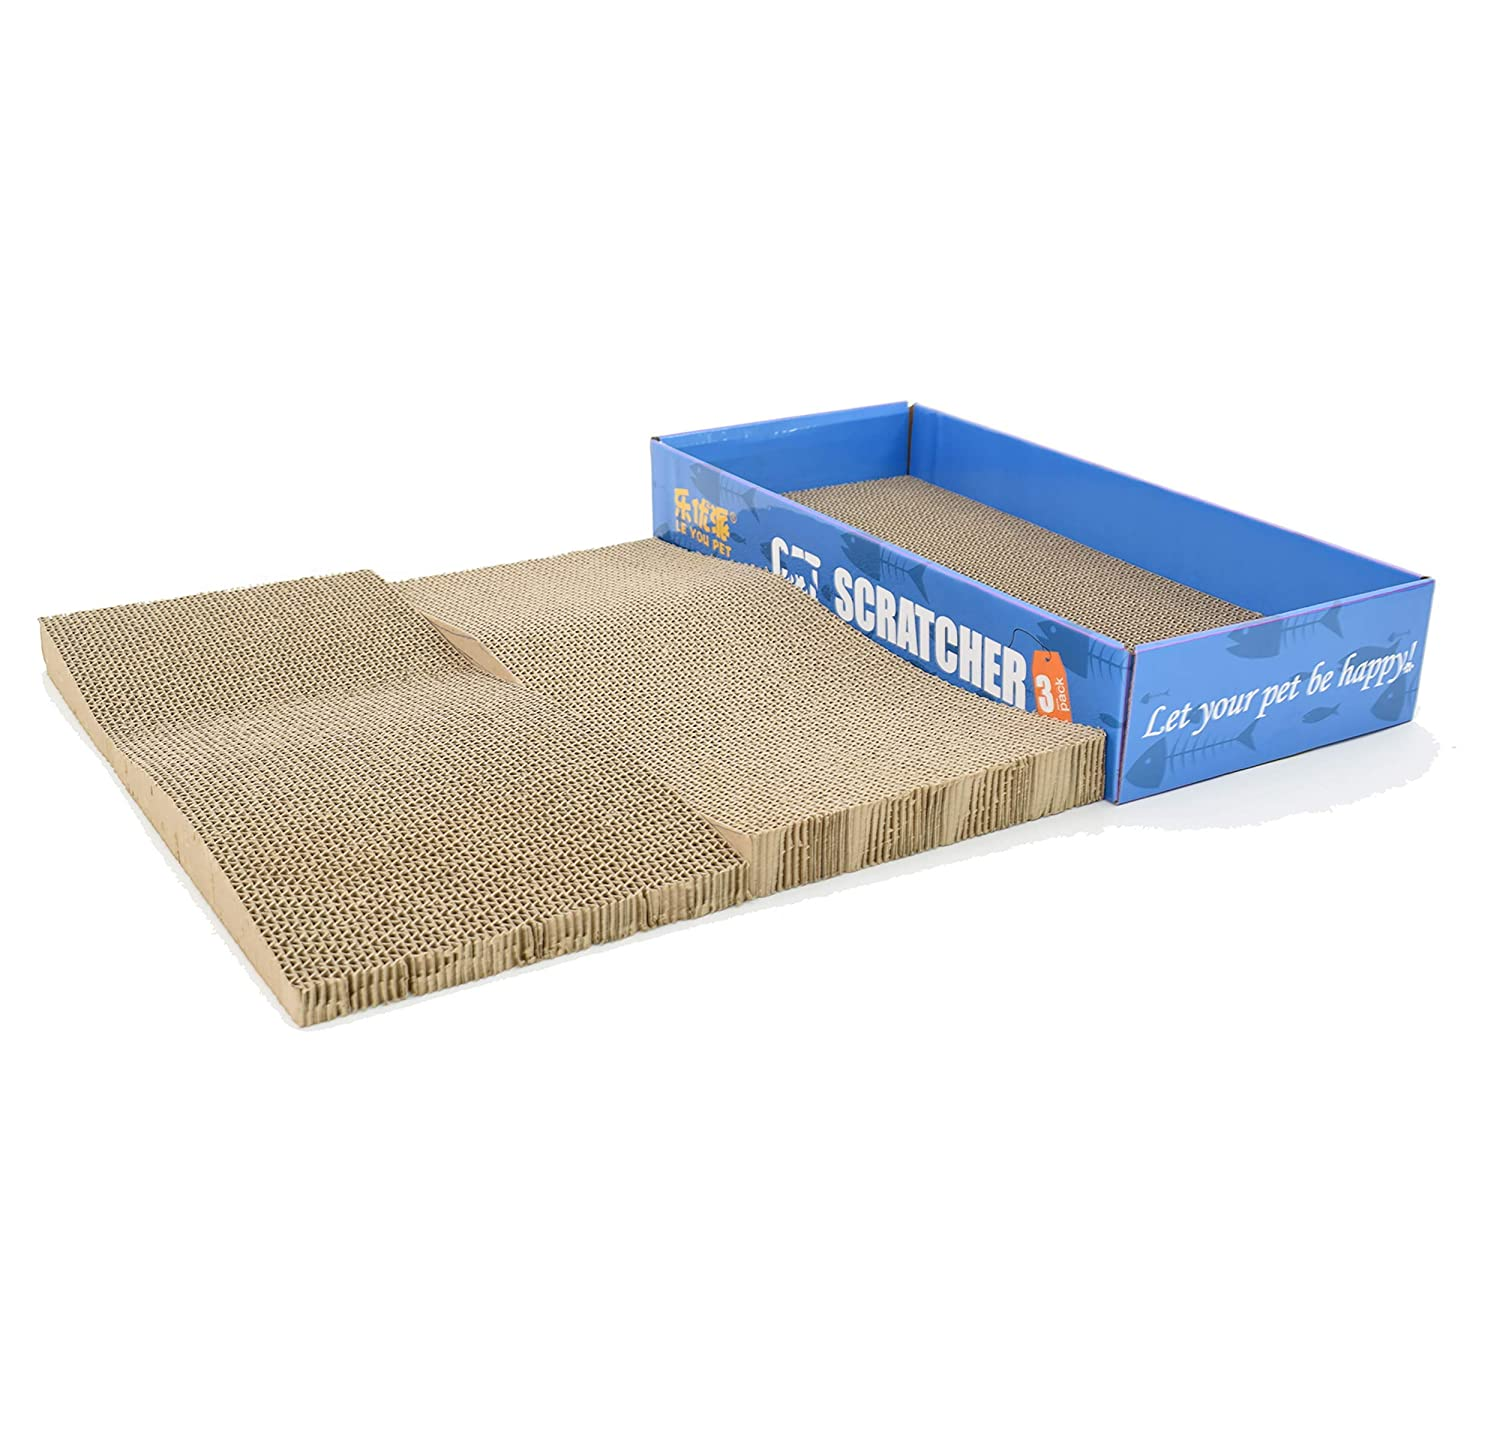 3 in 1 Cat Scratcher Cardboard Scratching Post with Catnip Scratch Lounge Toy Pad& Board,Two Pieces in One Box, Kitten Bed for Large Medium Small Cats, Furniture Savor 81Bo8Jl1YqL